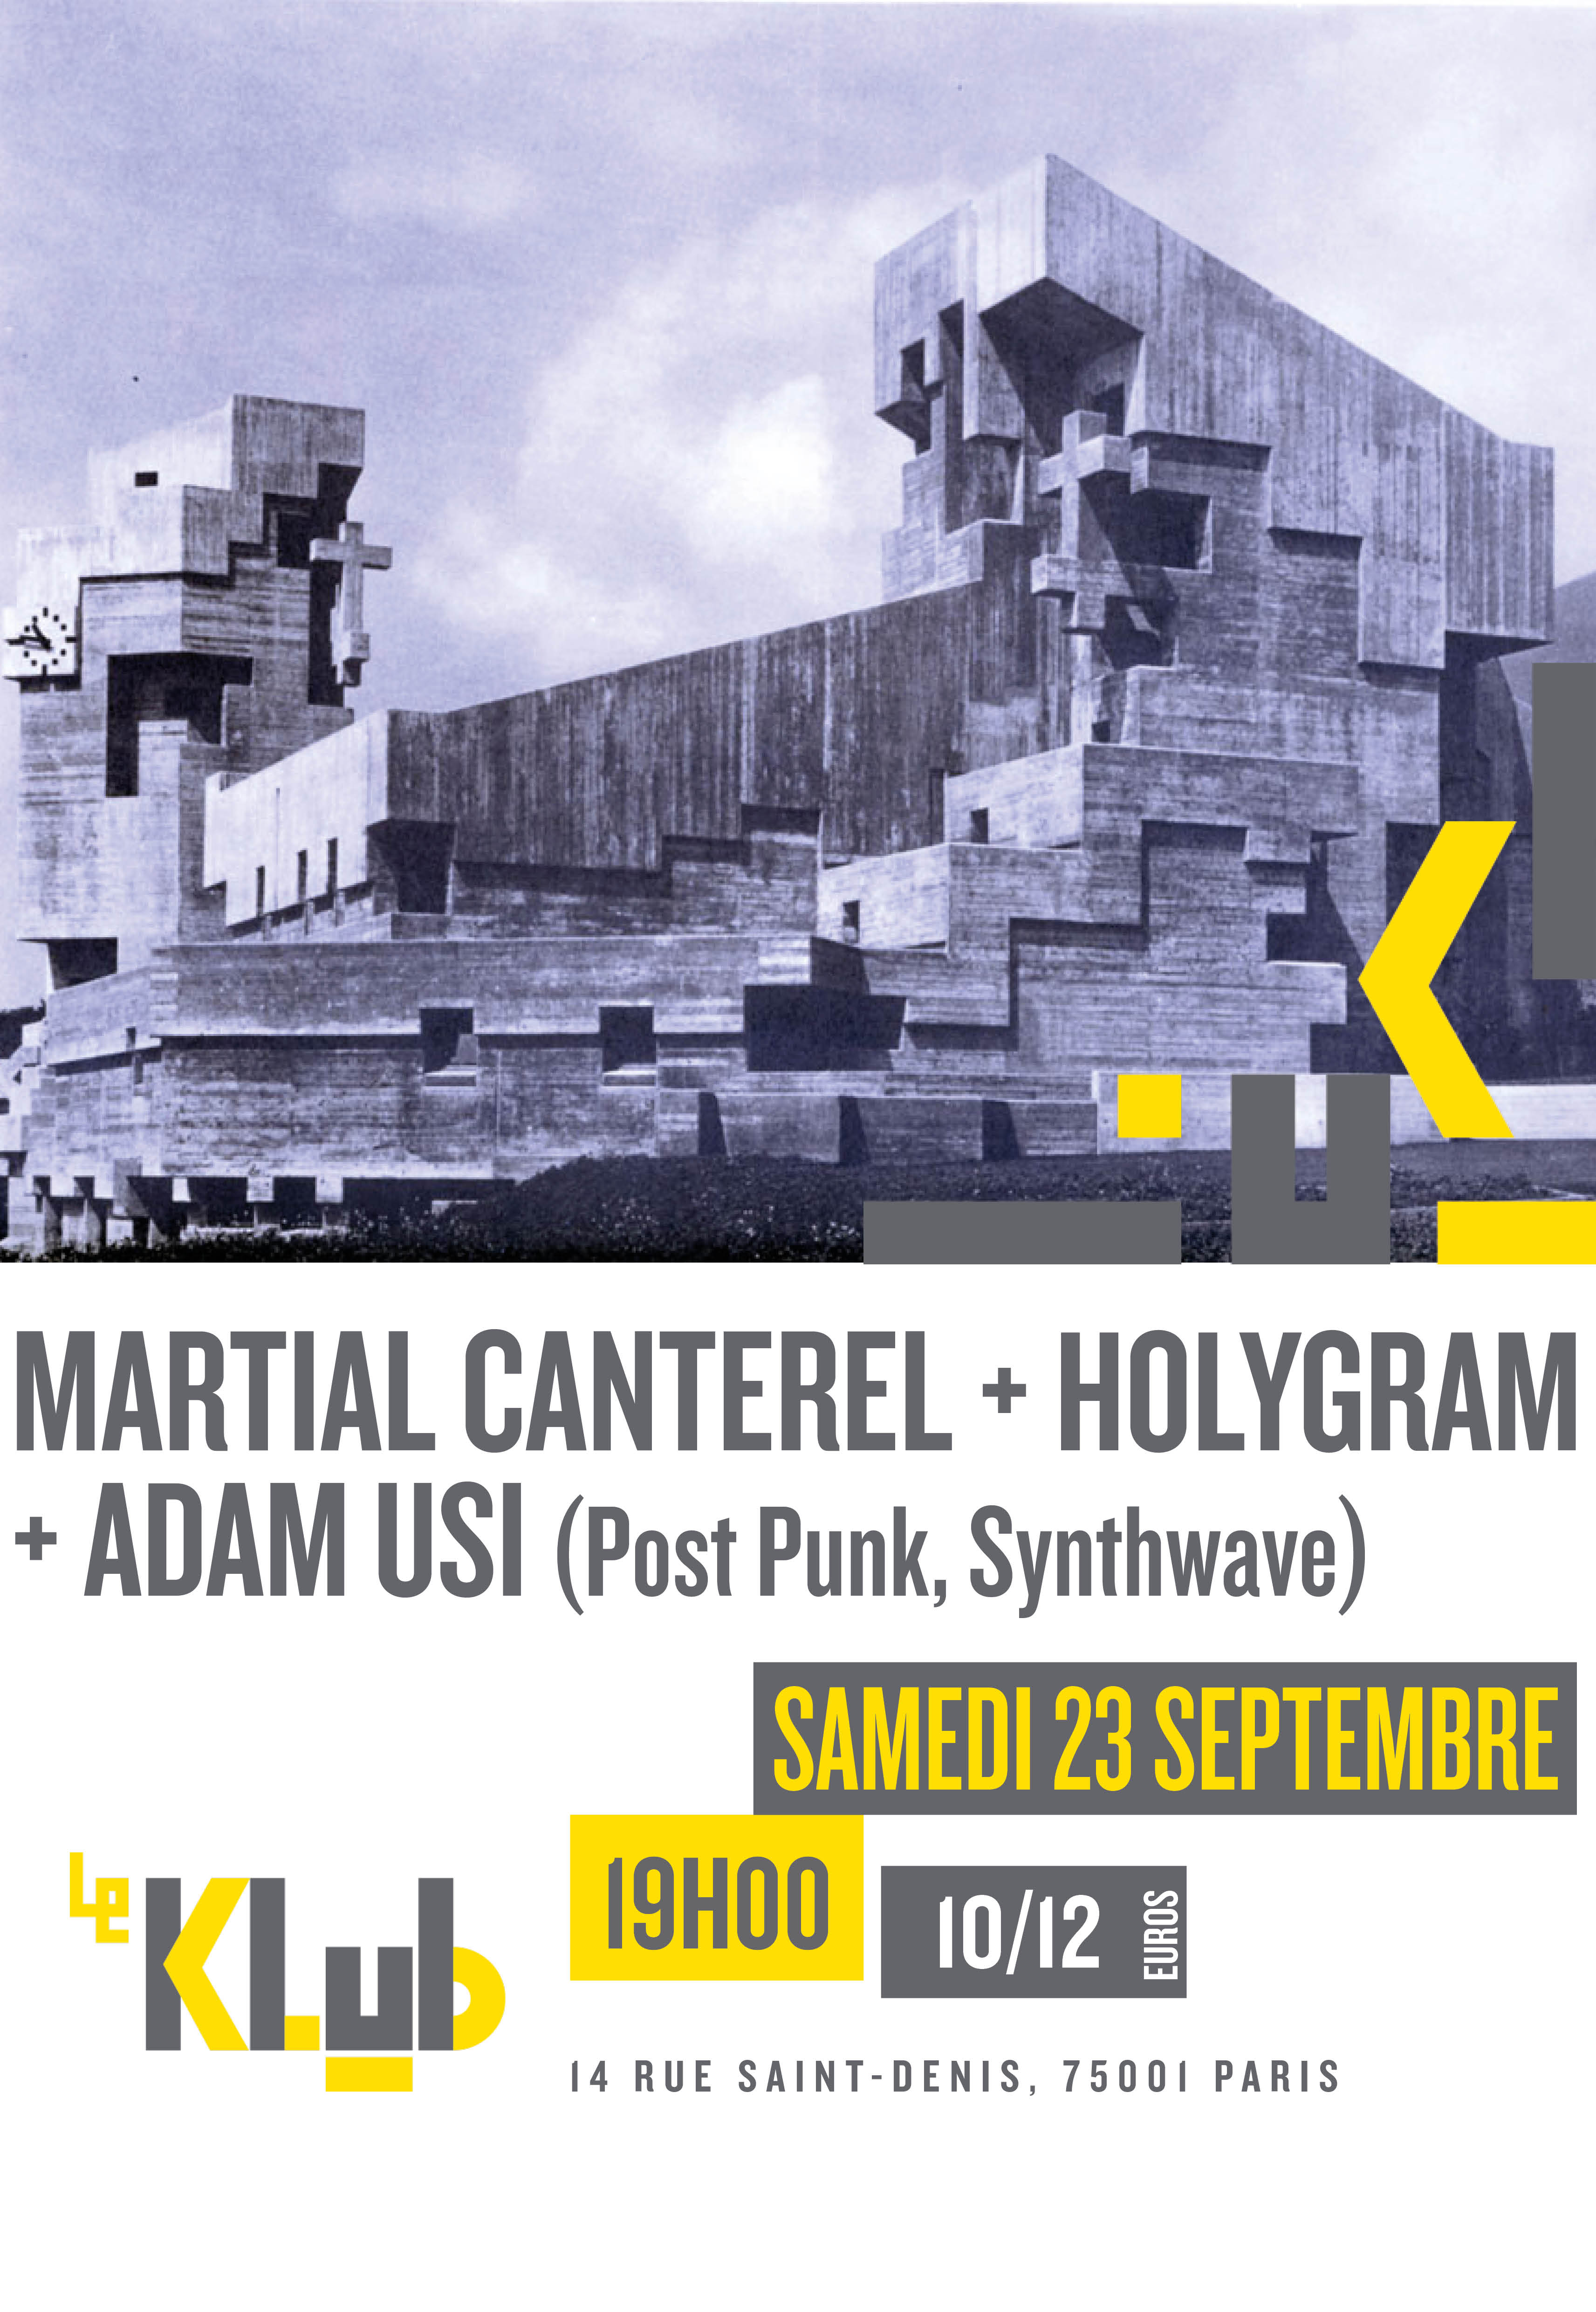 Martial Canterel (Release Party) + Holygram & Adam Usi ■ 23.09